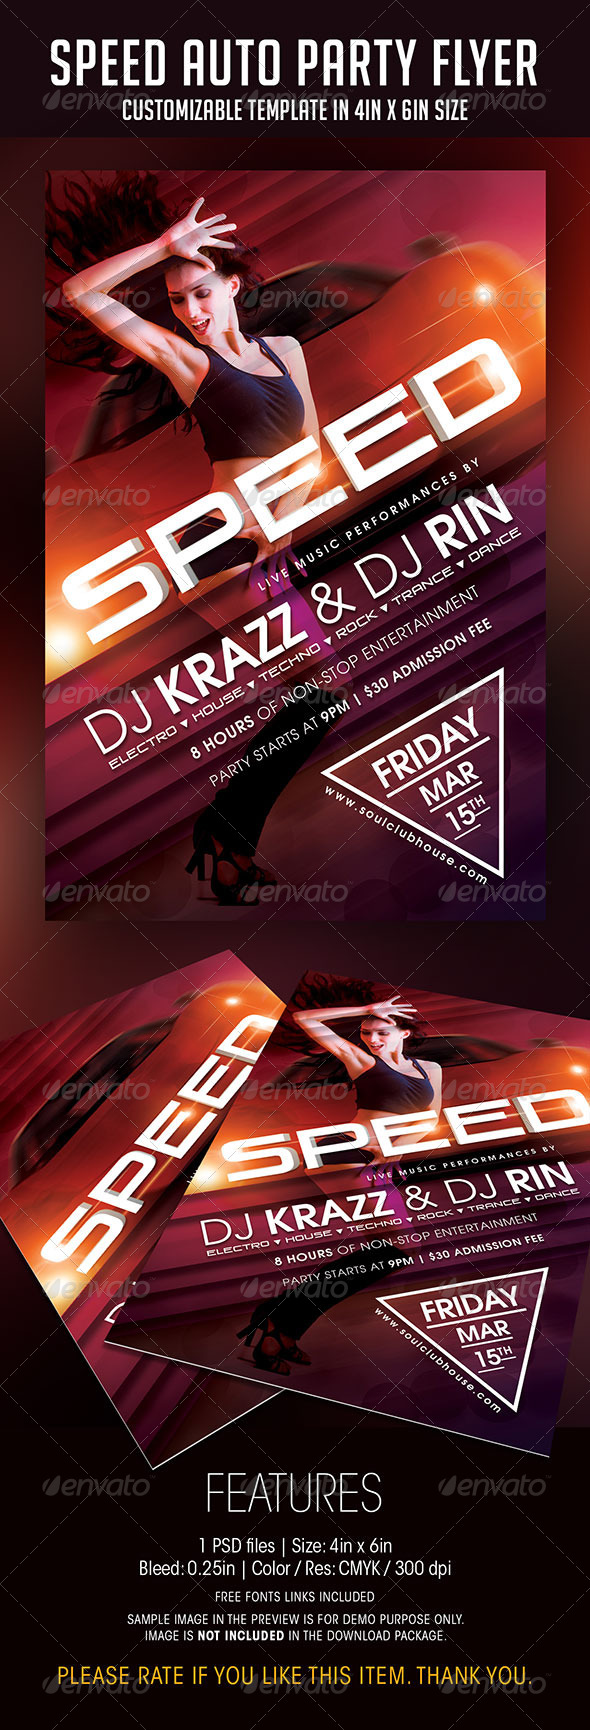 Speed Auto Party Flyer - Clubs & Parties Events